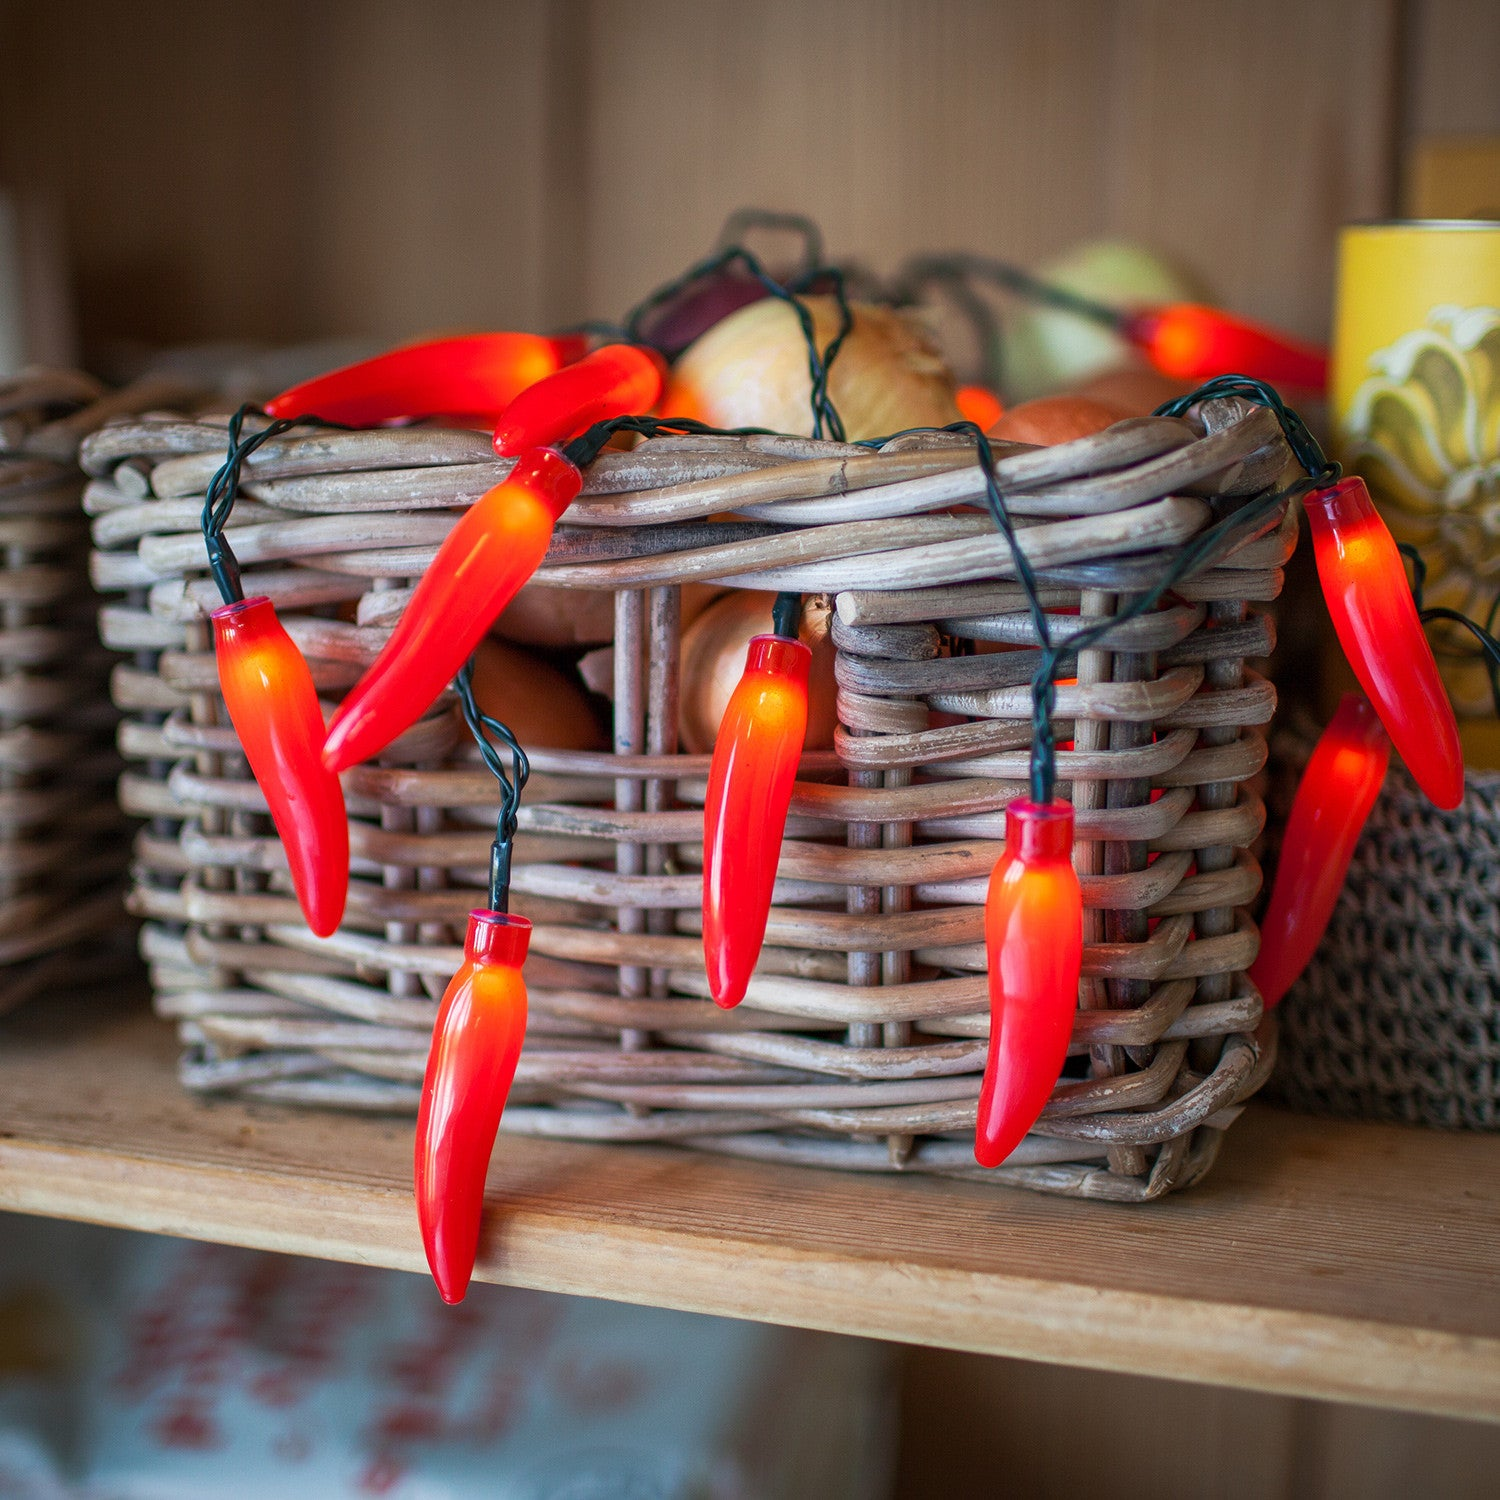 New 50-Count Multicolor Or Red Plug-In String Light Chili Pepper